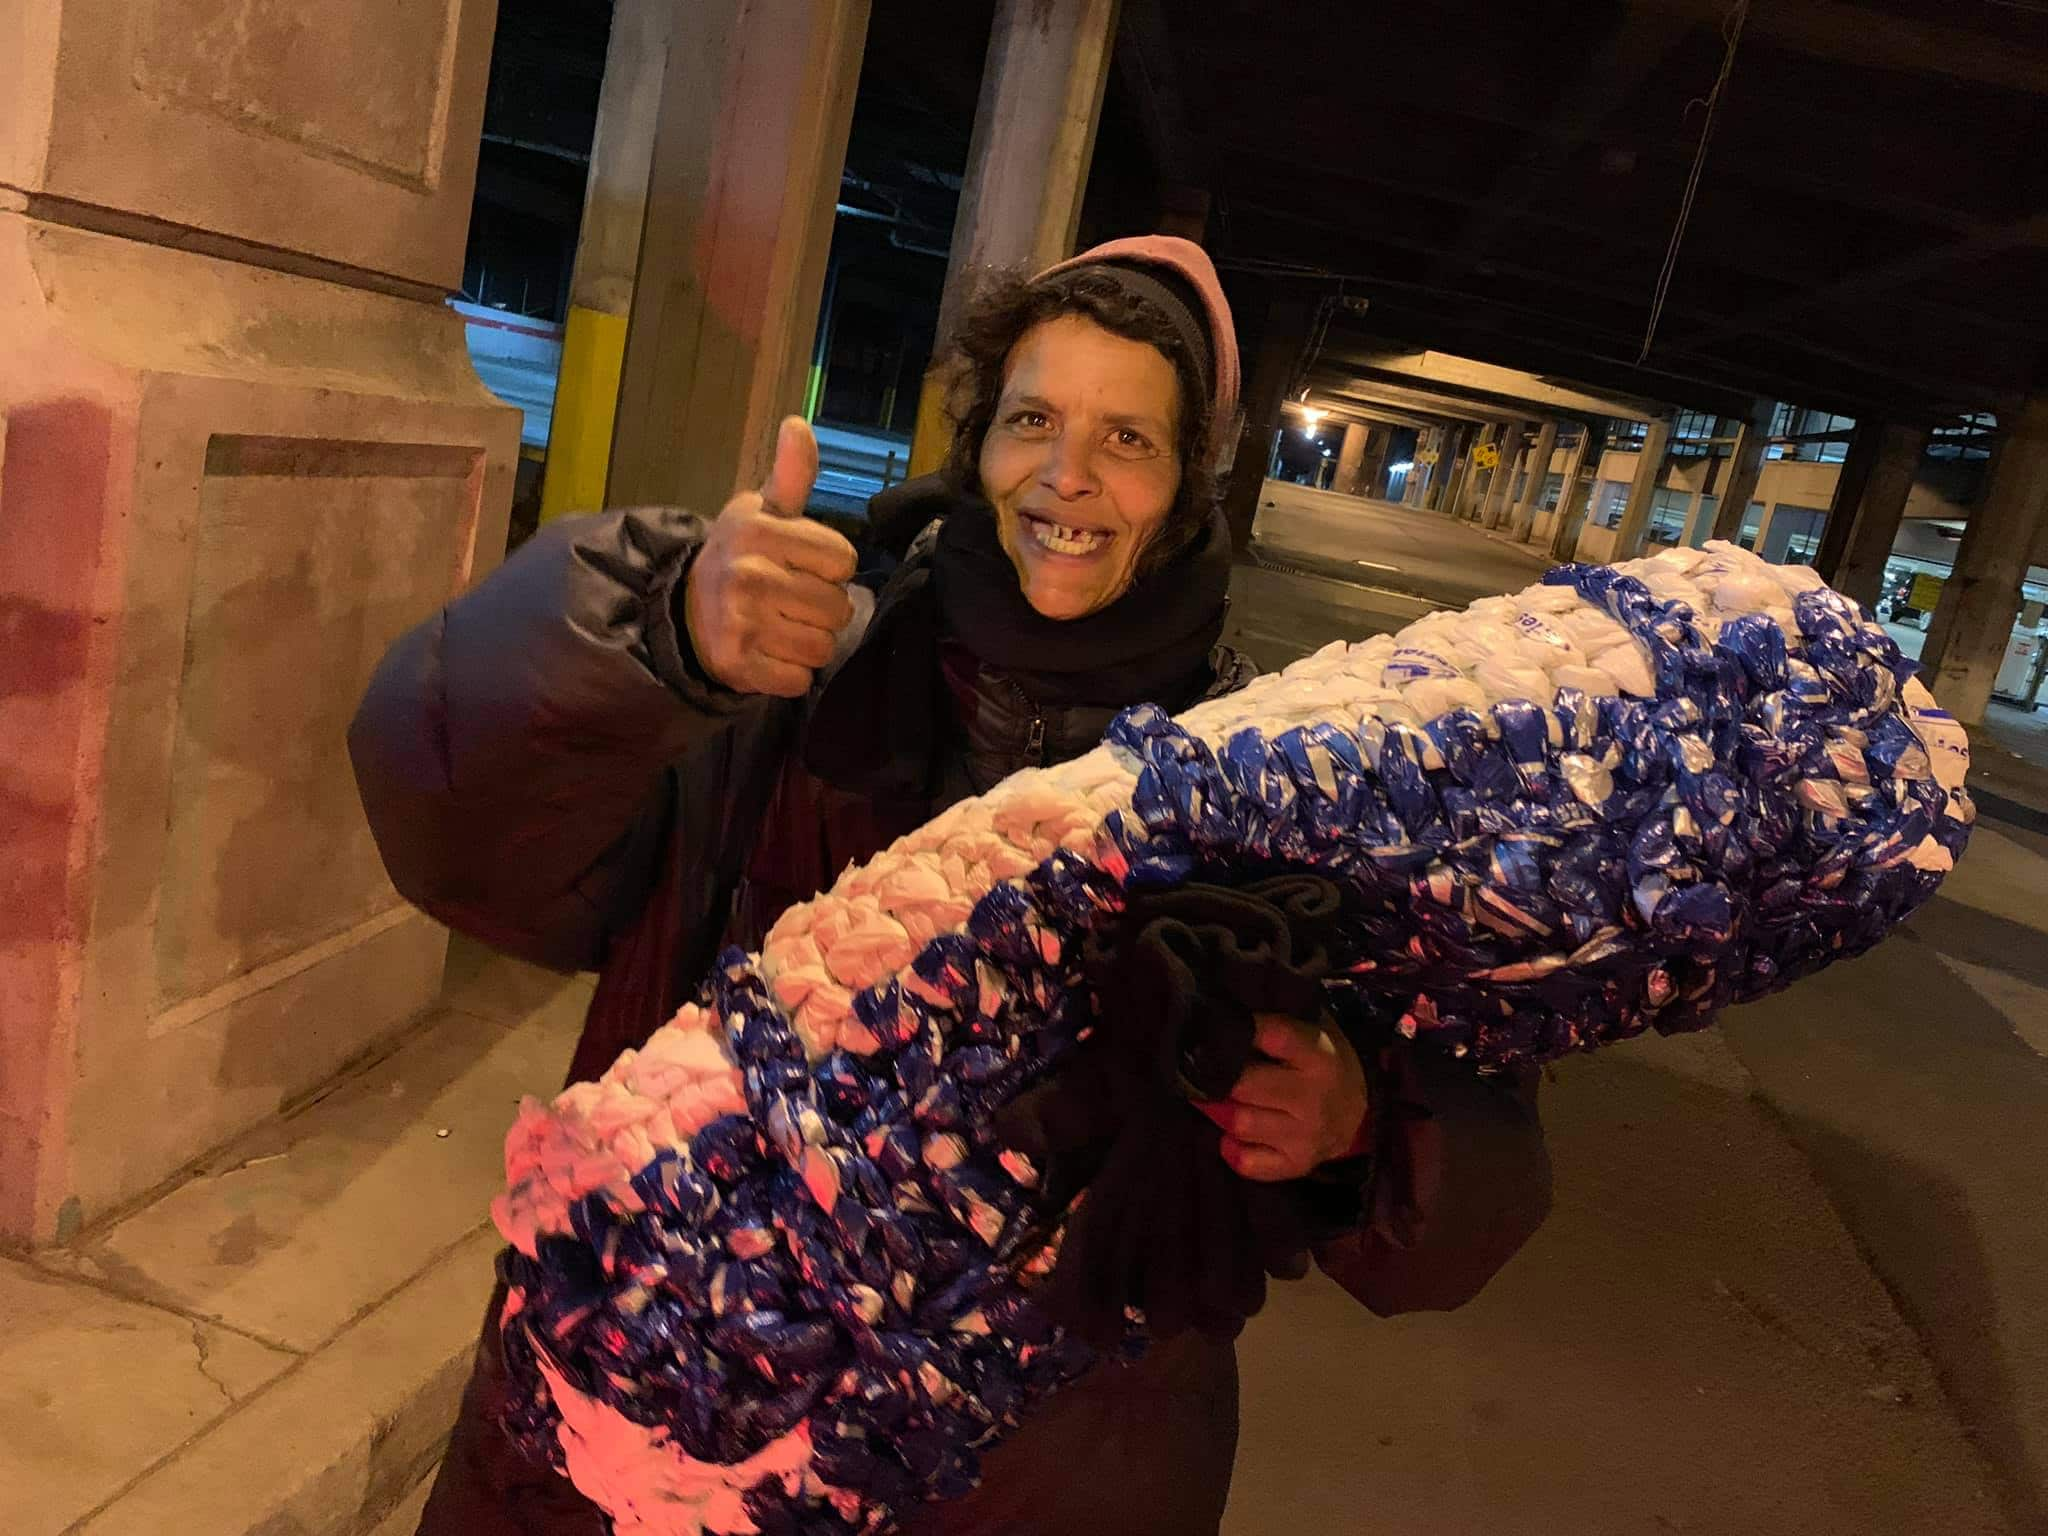 You are currently viewing Plastic Grocery Bags turned into Mats for the Homeless